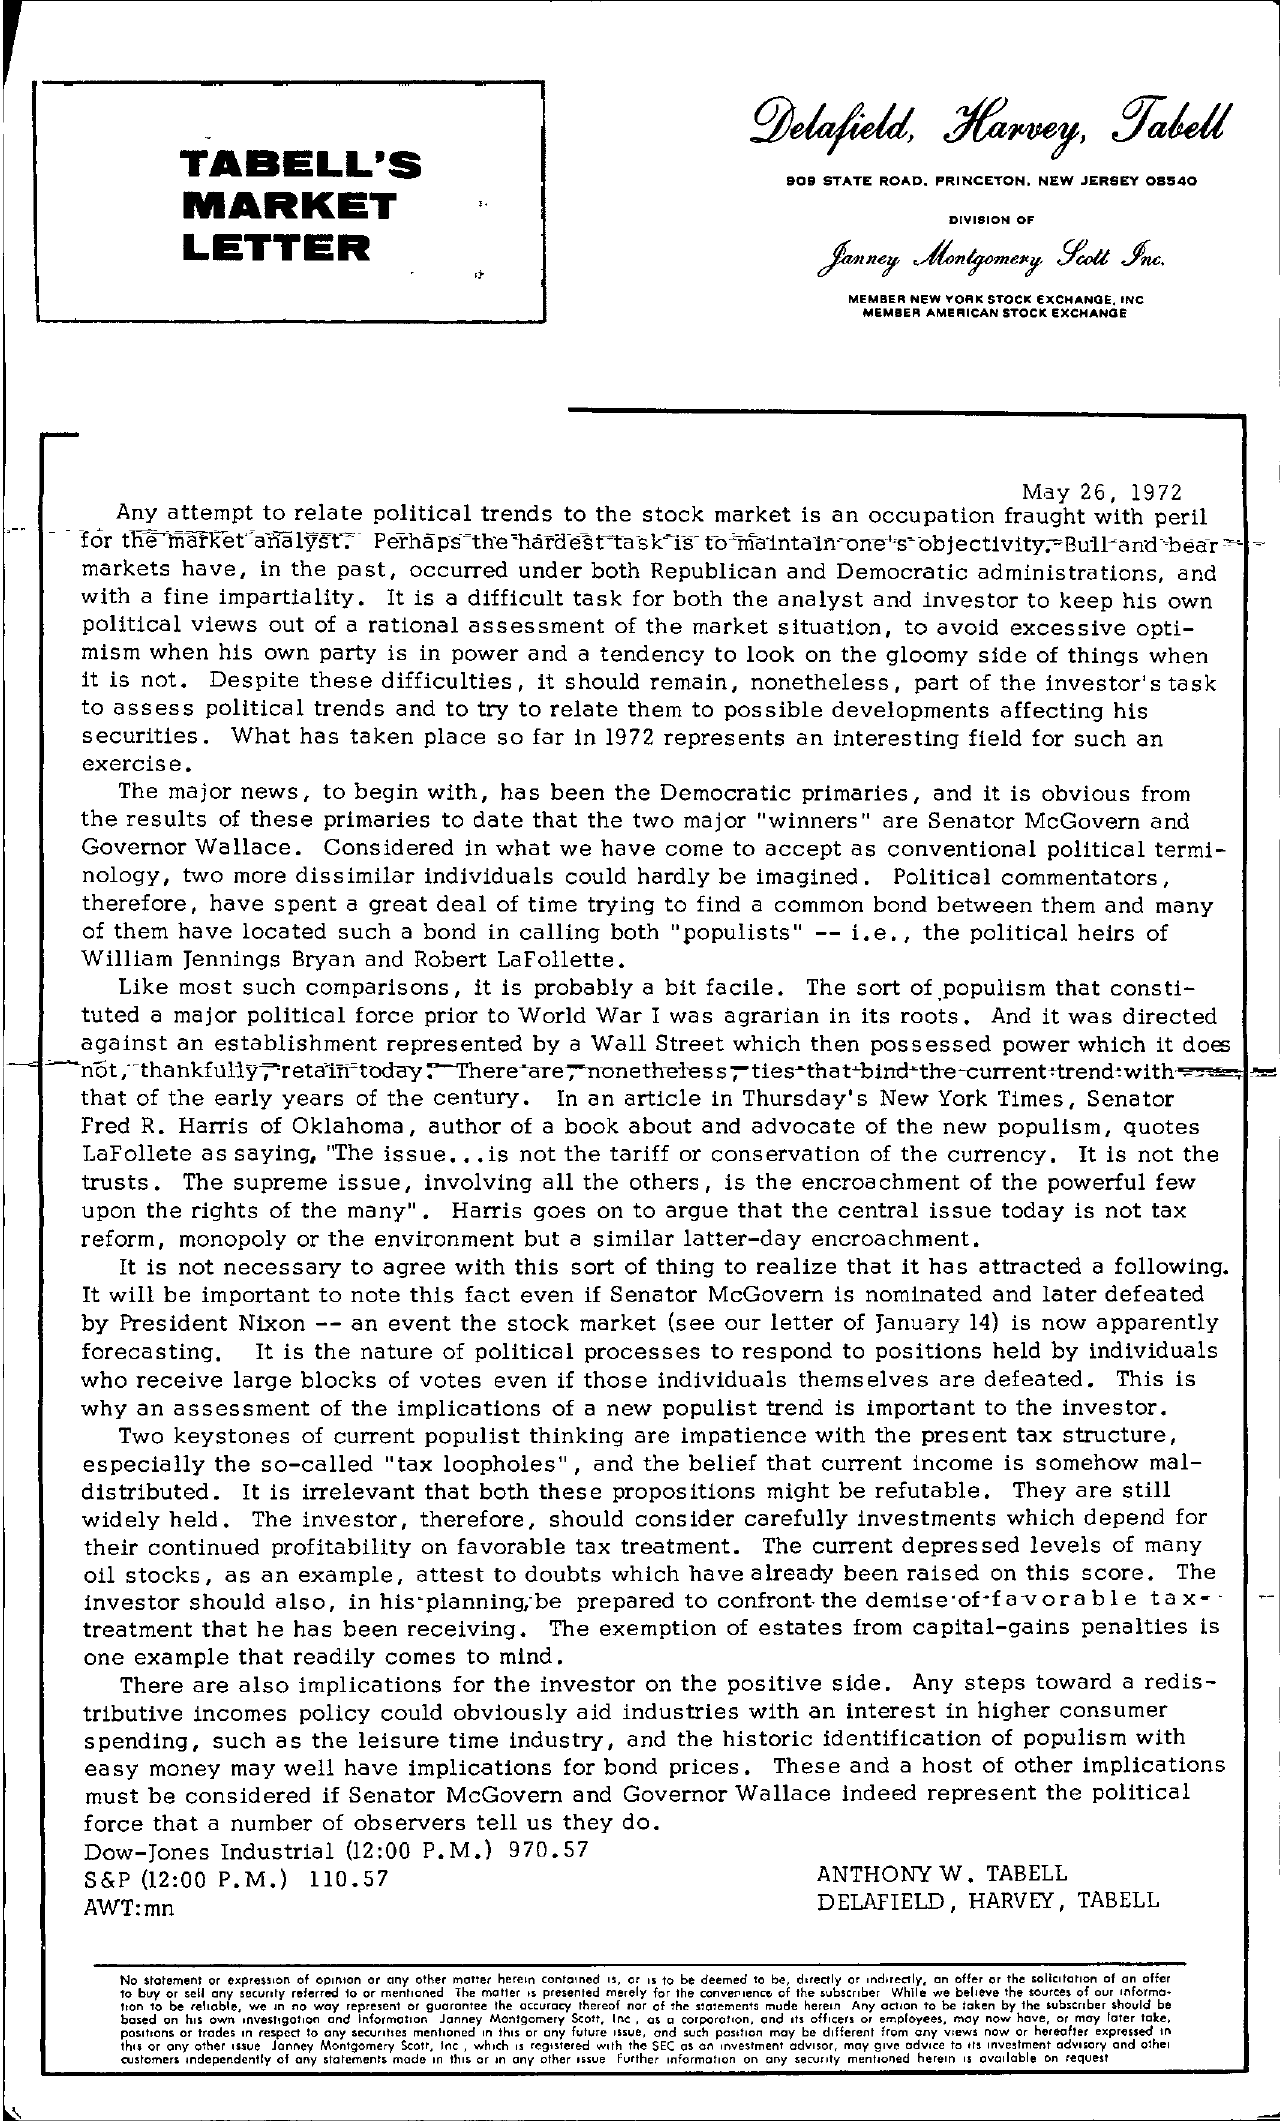 Tabell's Market Letter - May 26, 1972